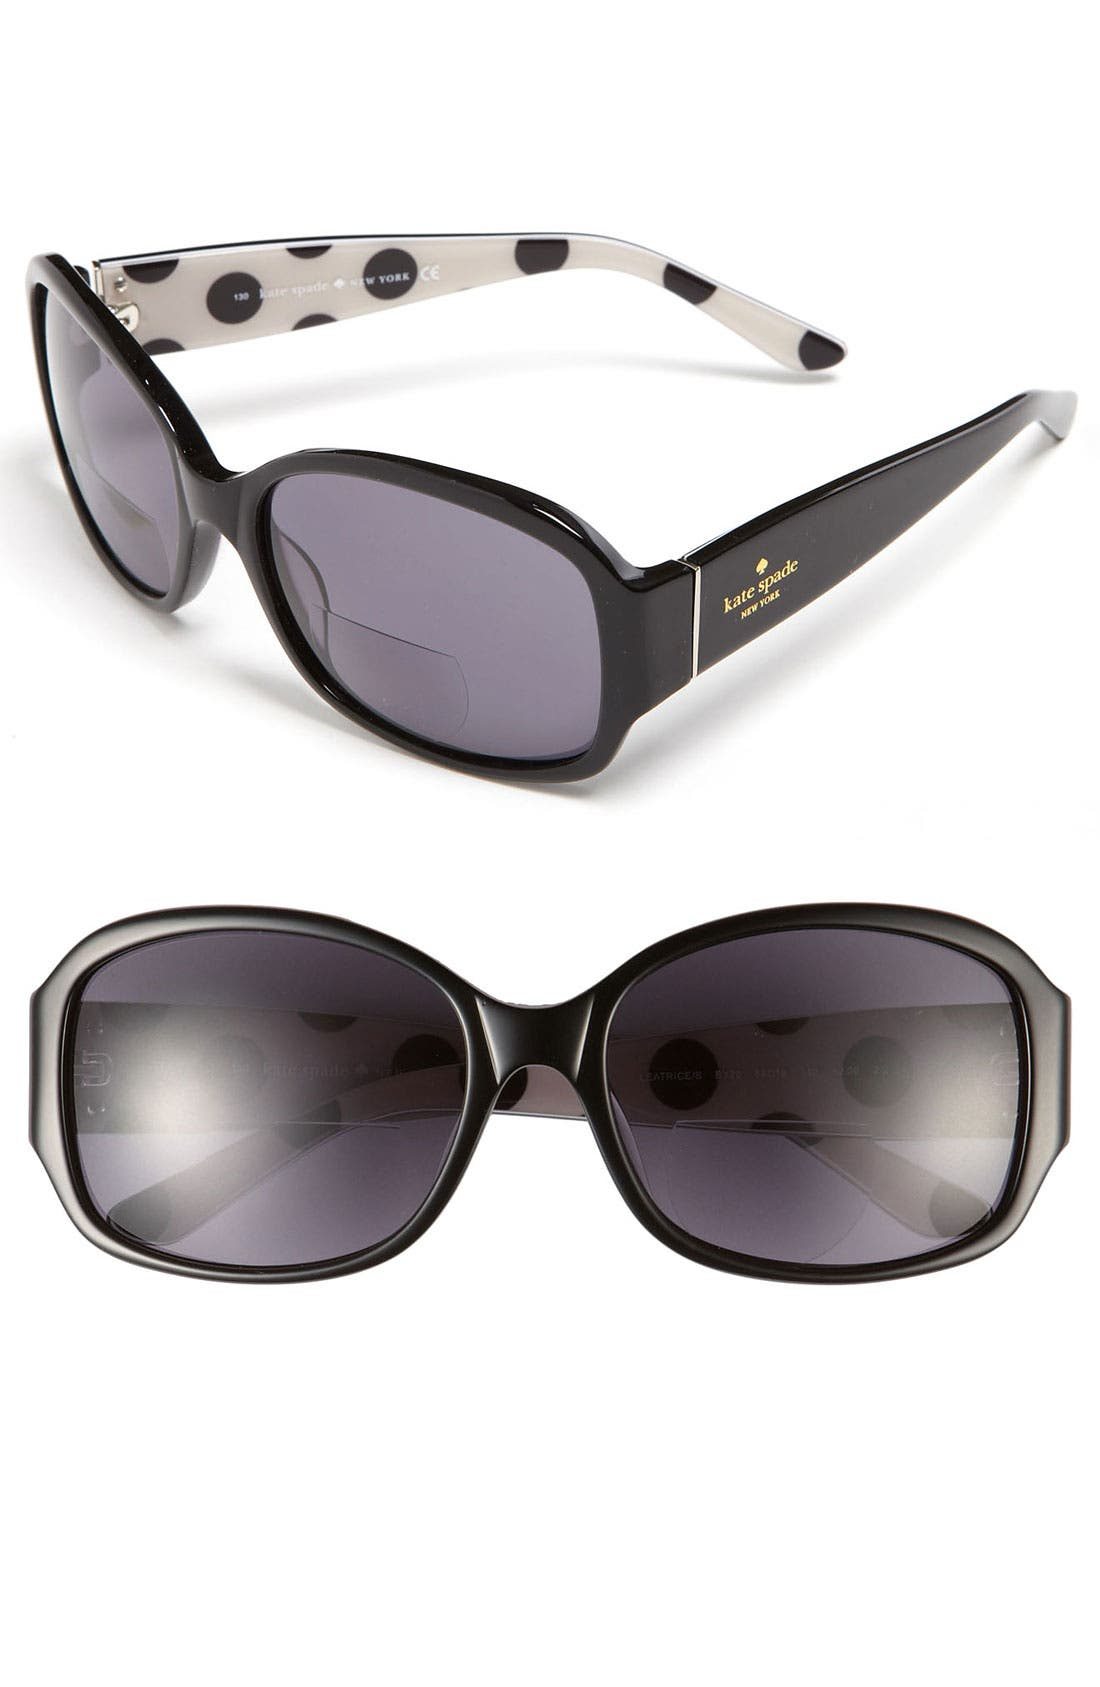 Alternate Image 1 Selected - kate spade new york 'leatrice' 58mm bifocal reading sunglasses (2 for $88)